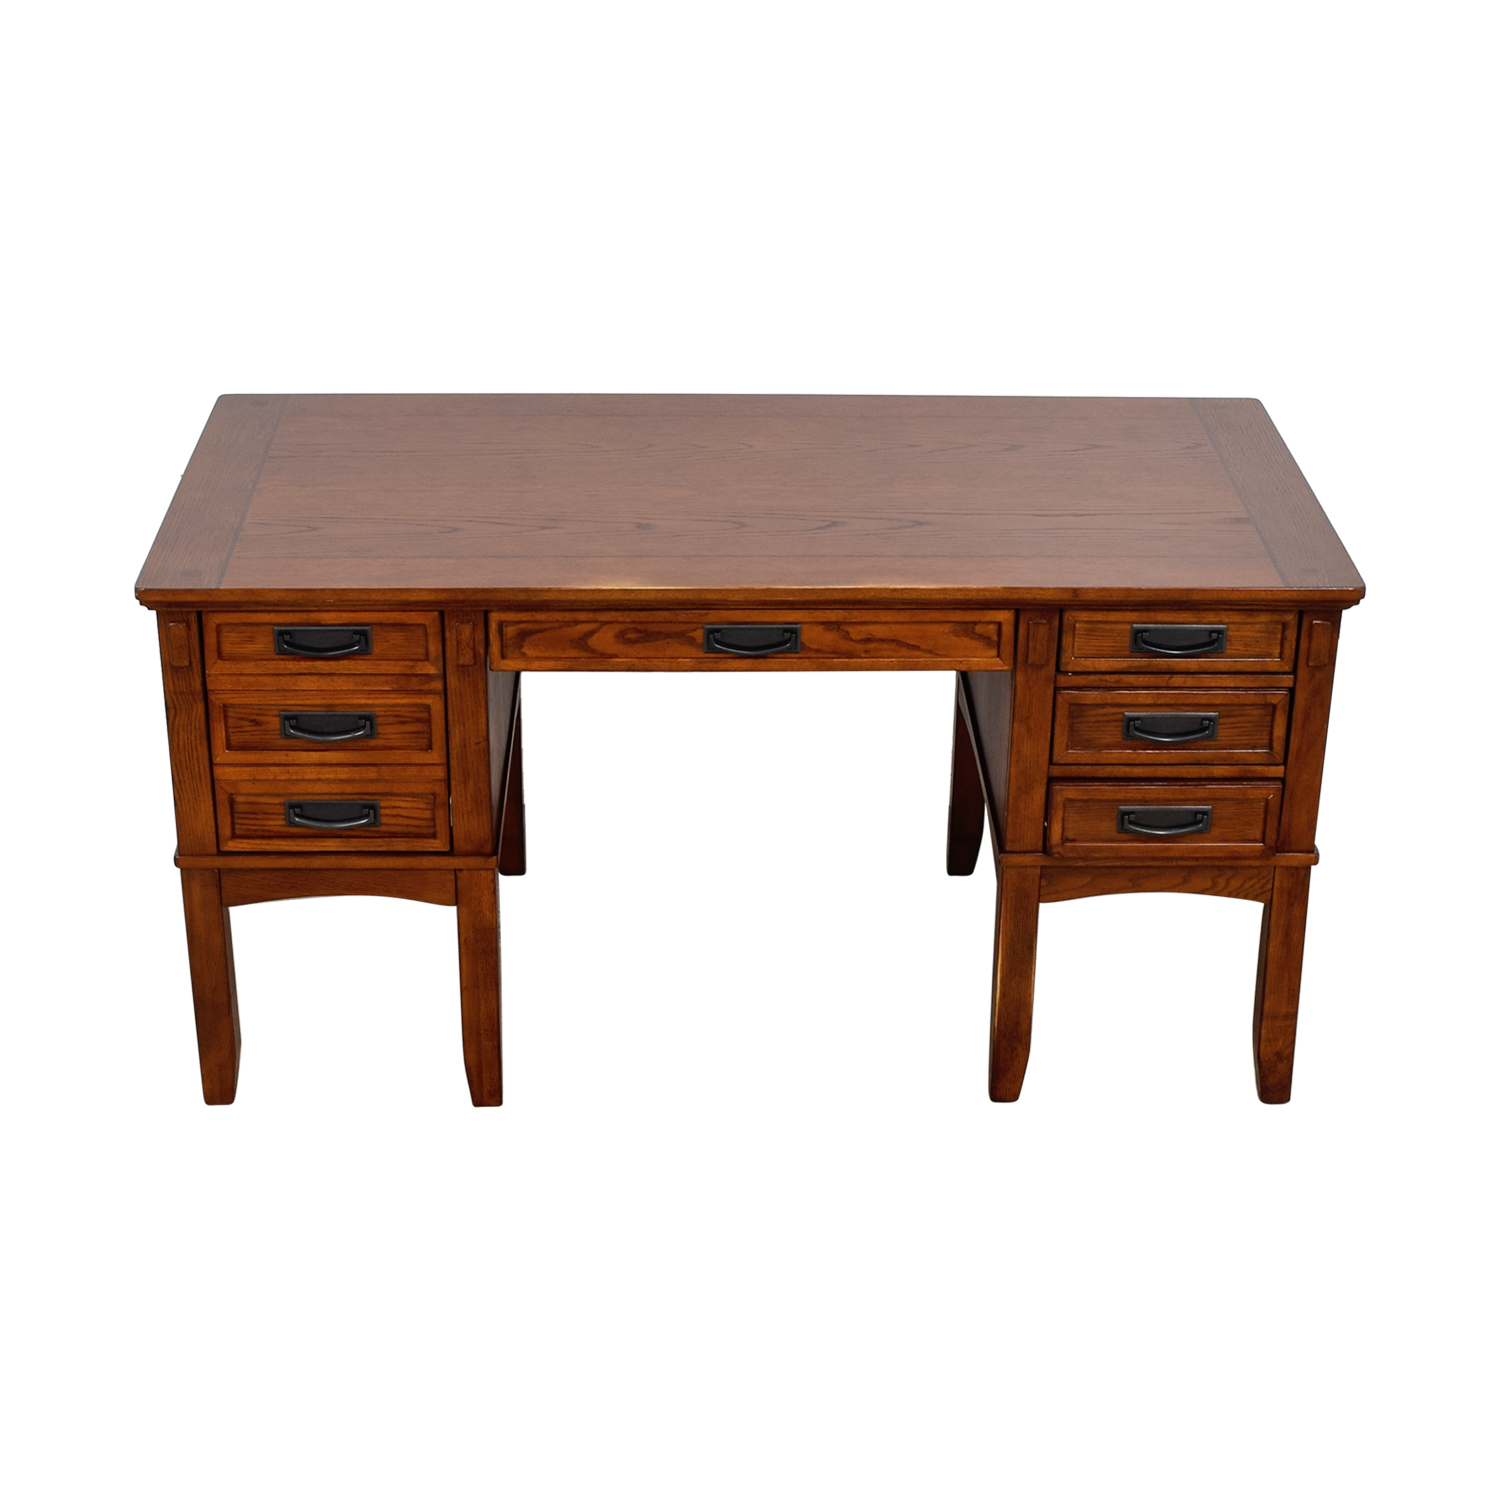 Belfort Furniture Belfort Furniture Light Cherry Five-Drawer Wood Desk on sale